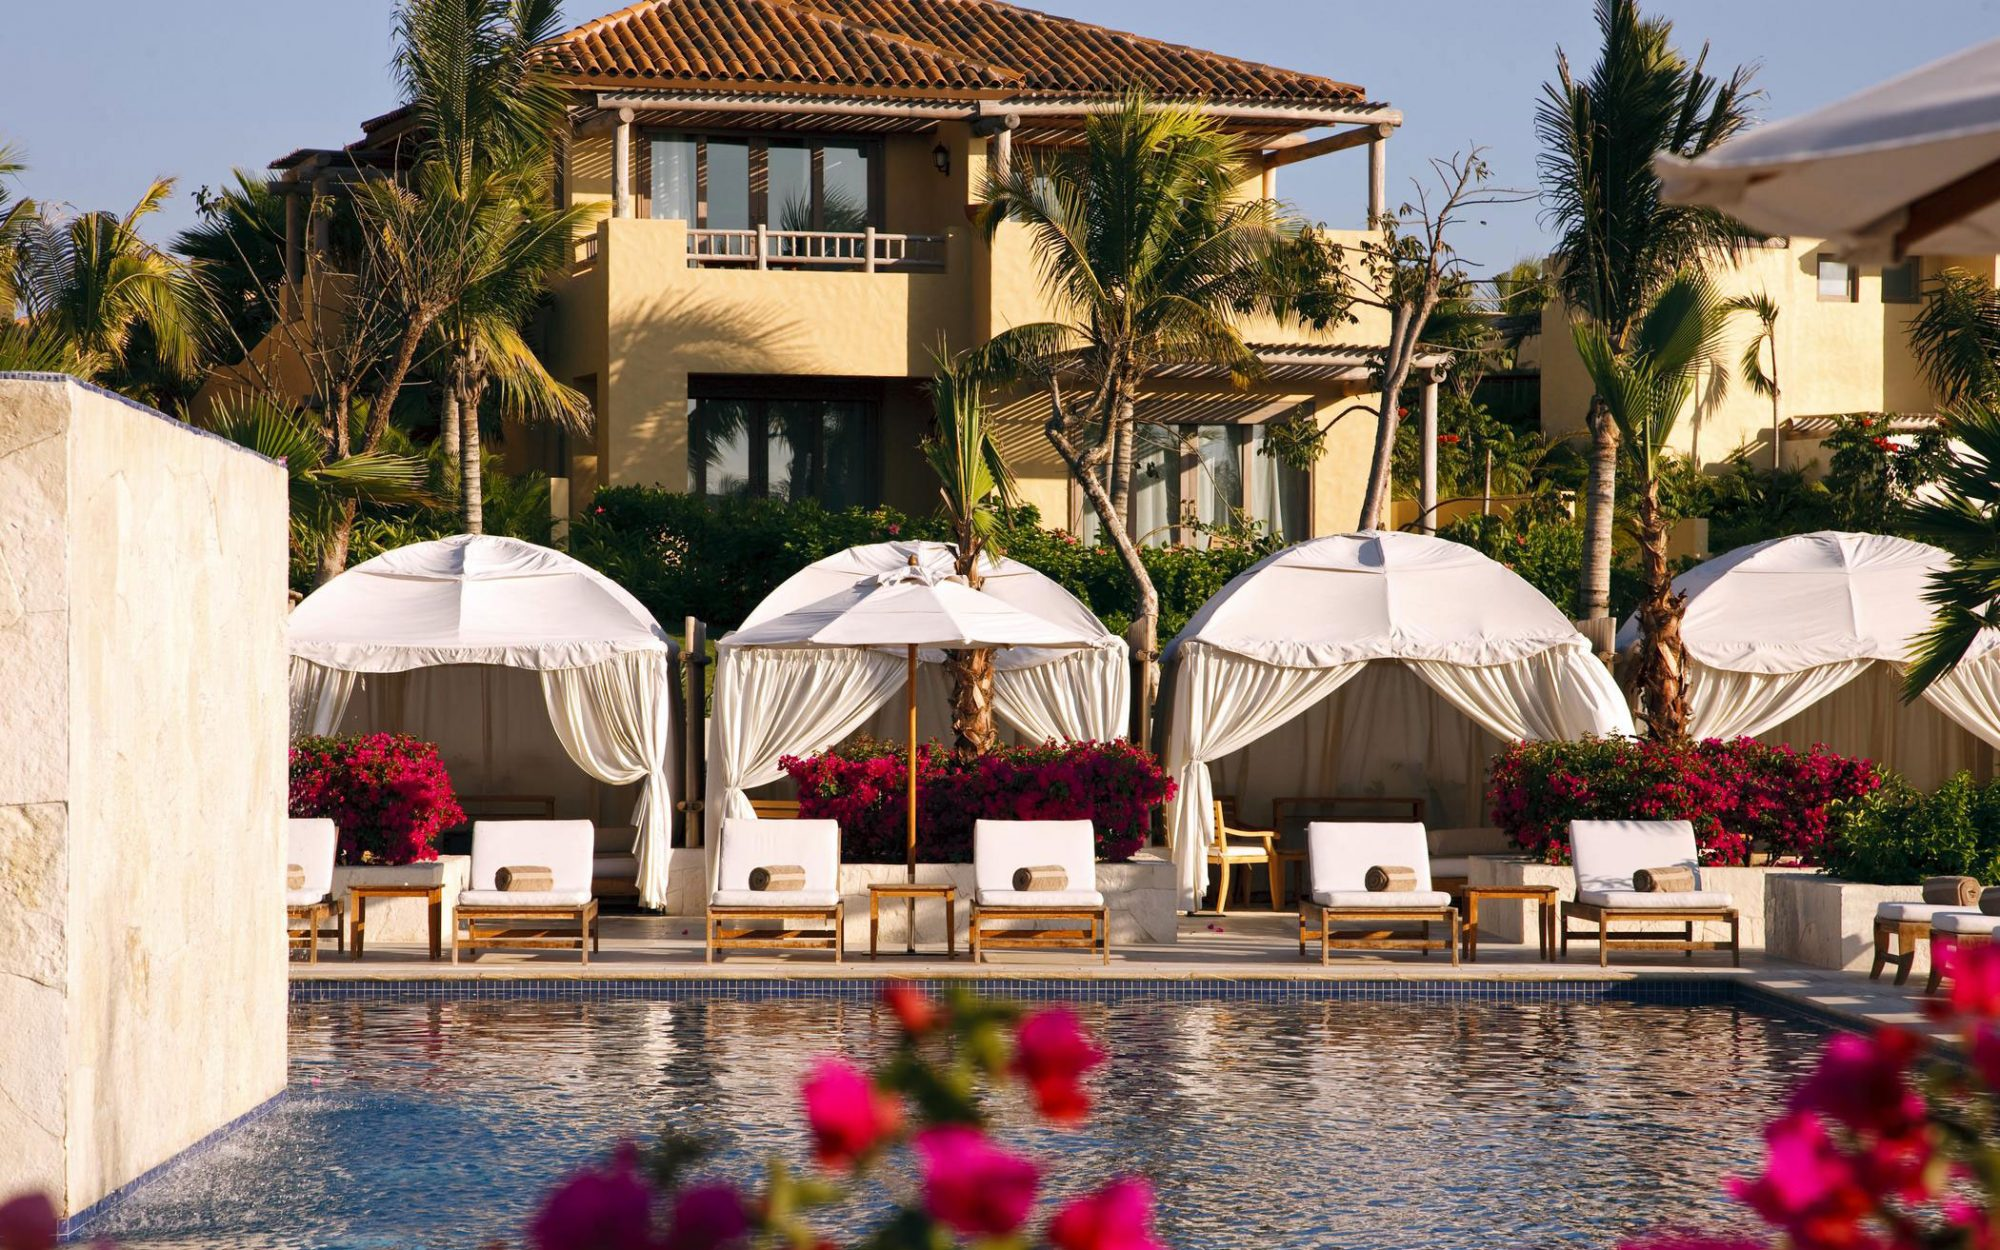 World's Most Romantic Hotels: No. 12 St. Regis Punta Mita Resort, Punta Mita, Mexico